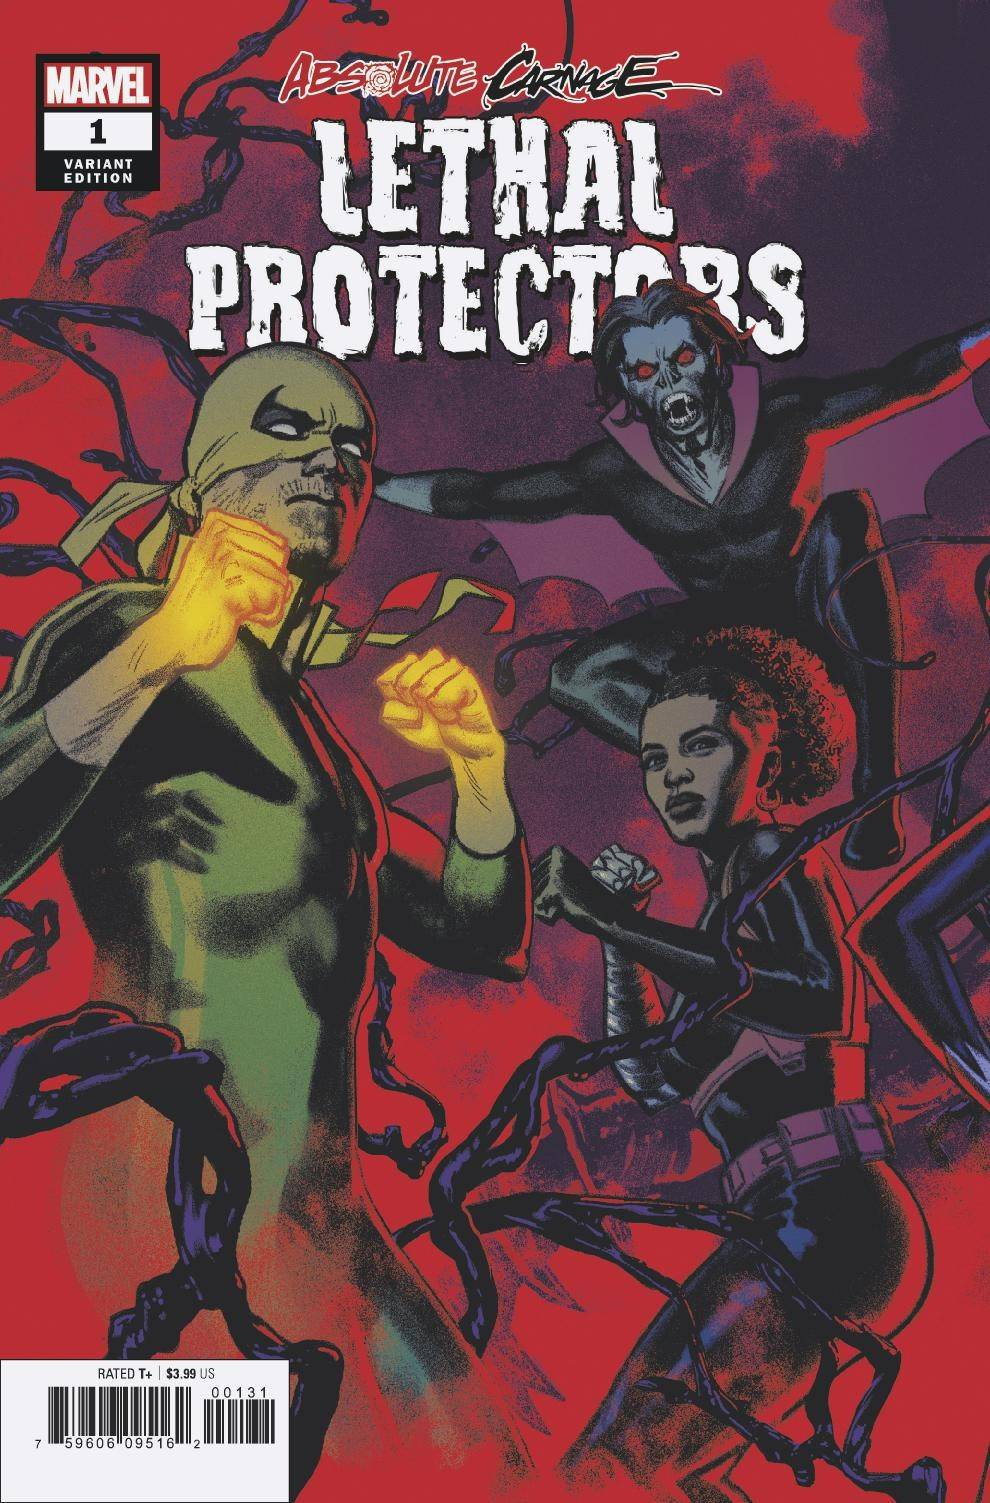 08/28/2019 ABSOLUTE CARNAGE LETHAL PROTECTORS #1 (OF 3) SMALLWOOD CONNE